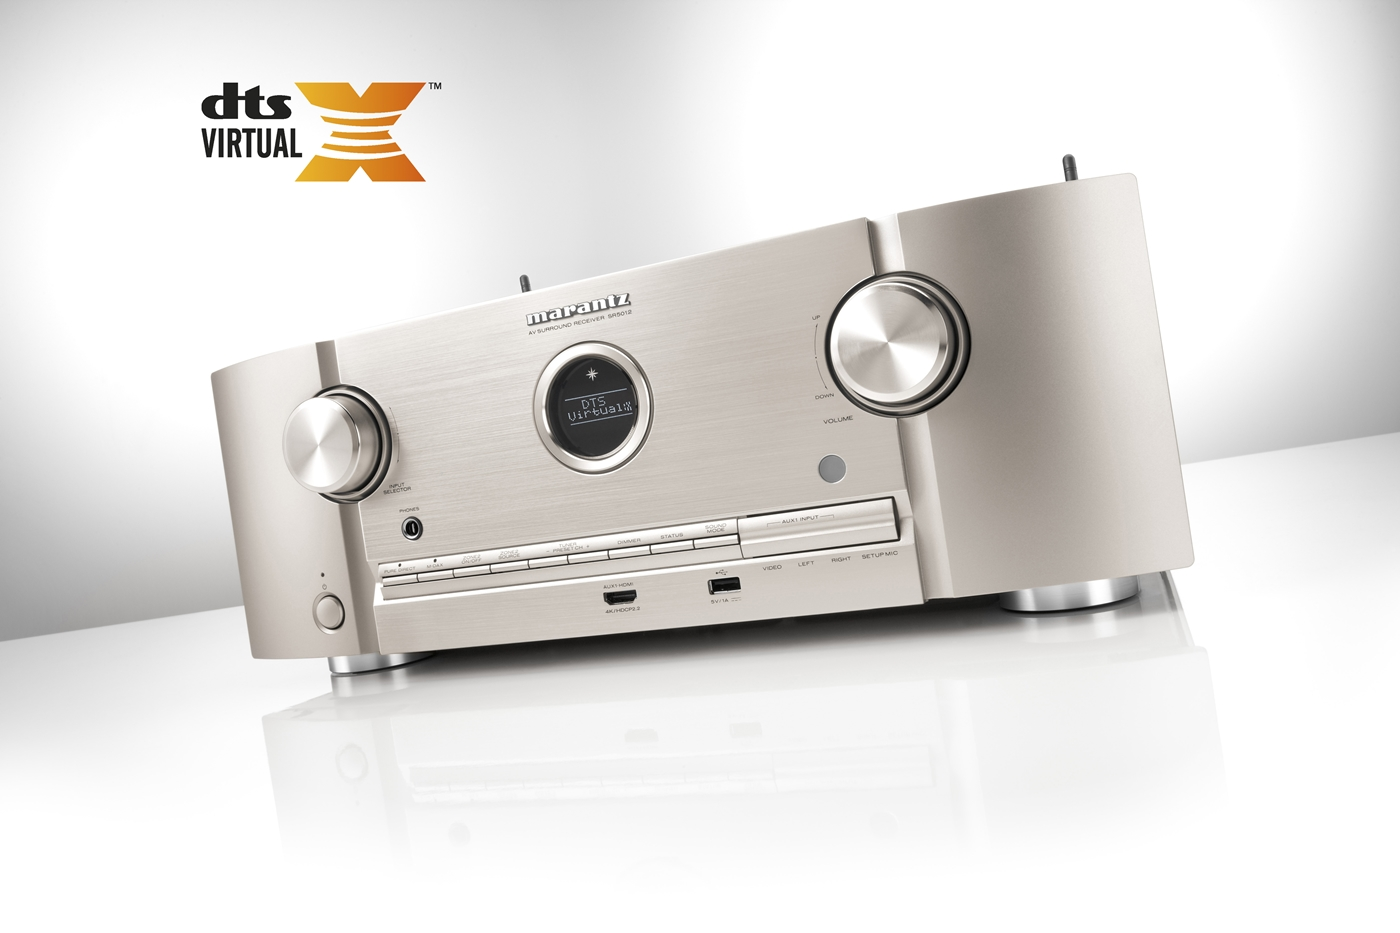 Denon Marantz DTS Virtual X 2